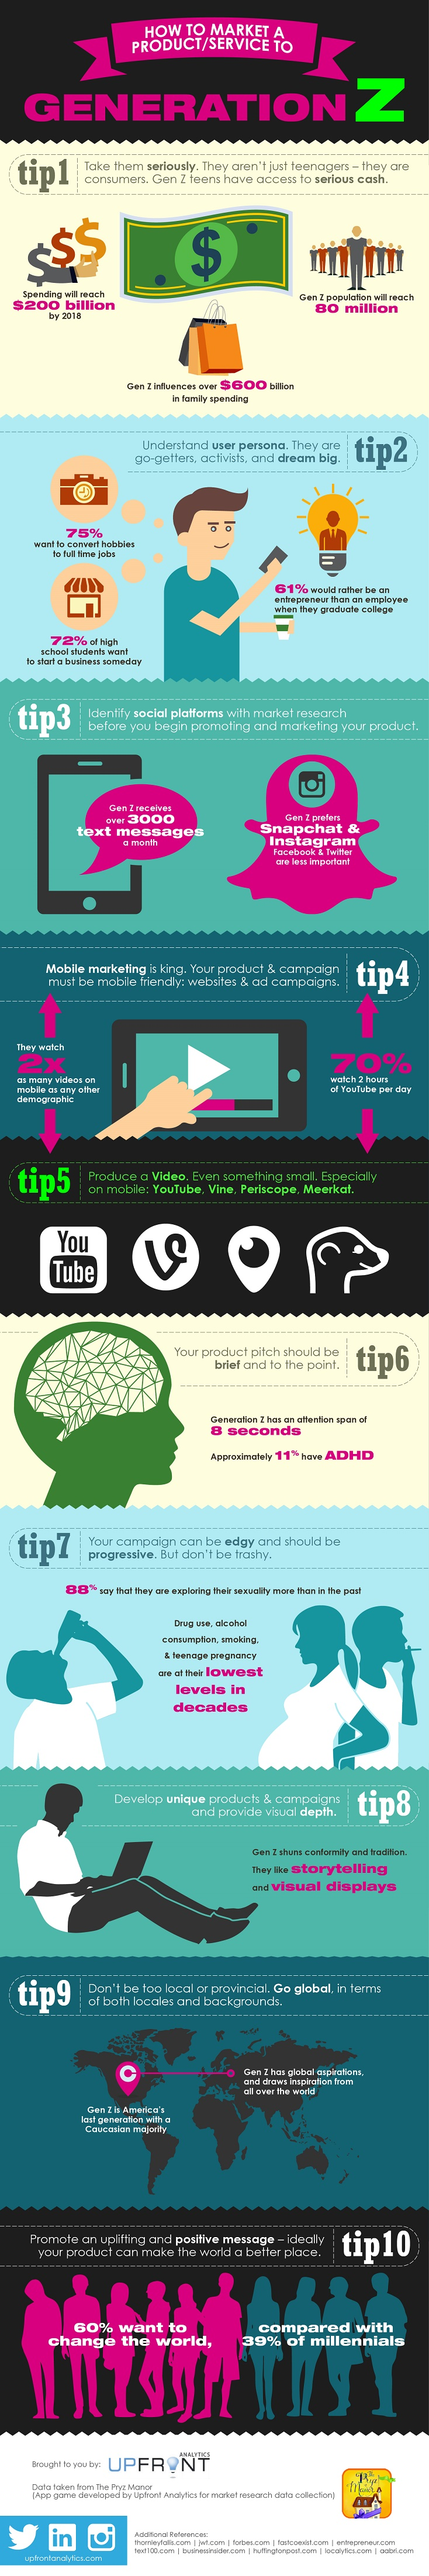 Infographic: How To Market To Generation Z